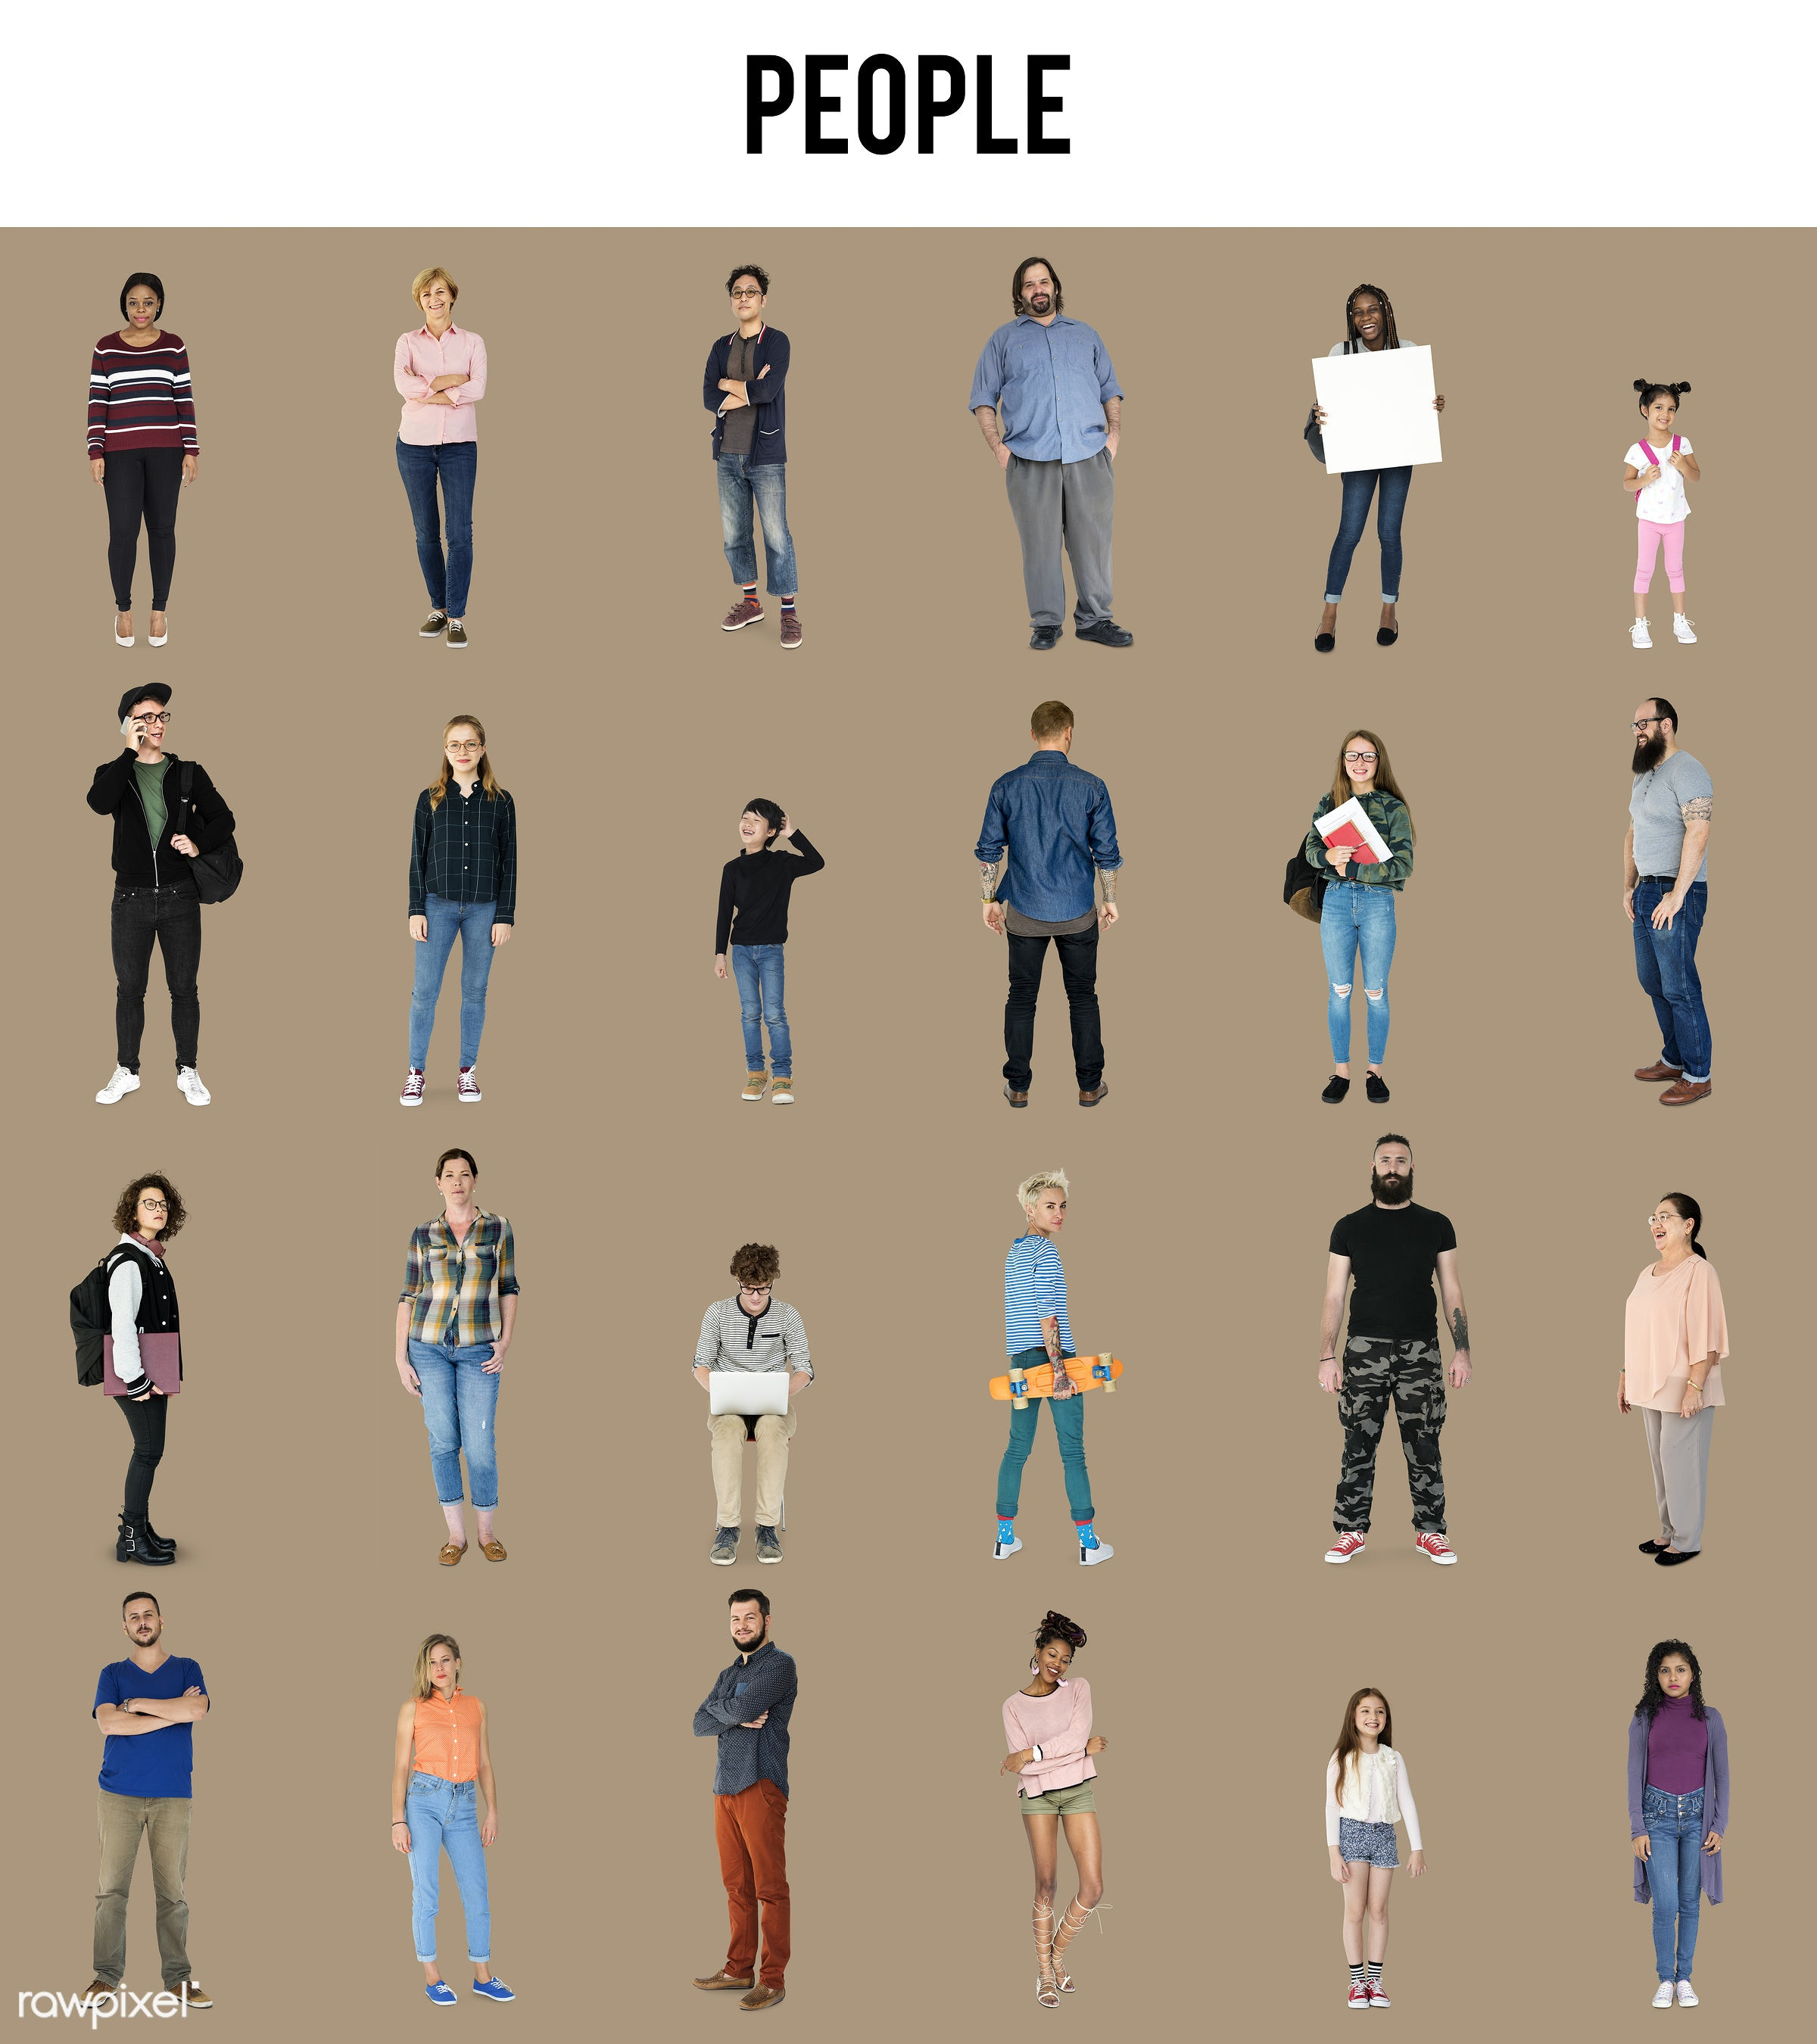 adult, african, asian, background, black, boy, casual, caucasian, children, collection, community, concept, crowd, different...